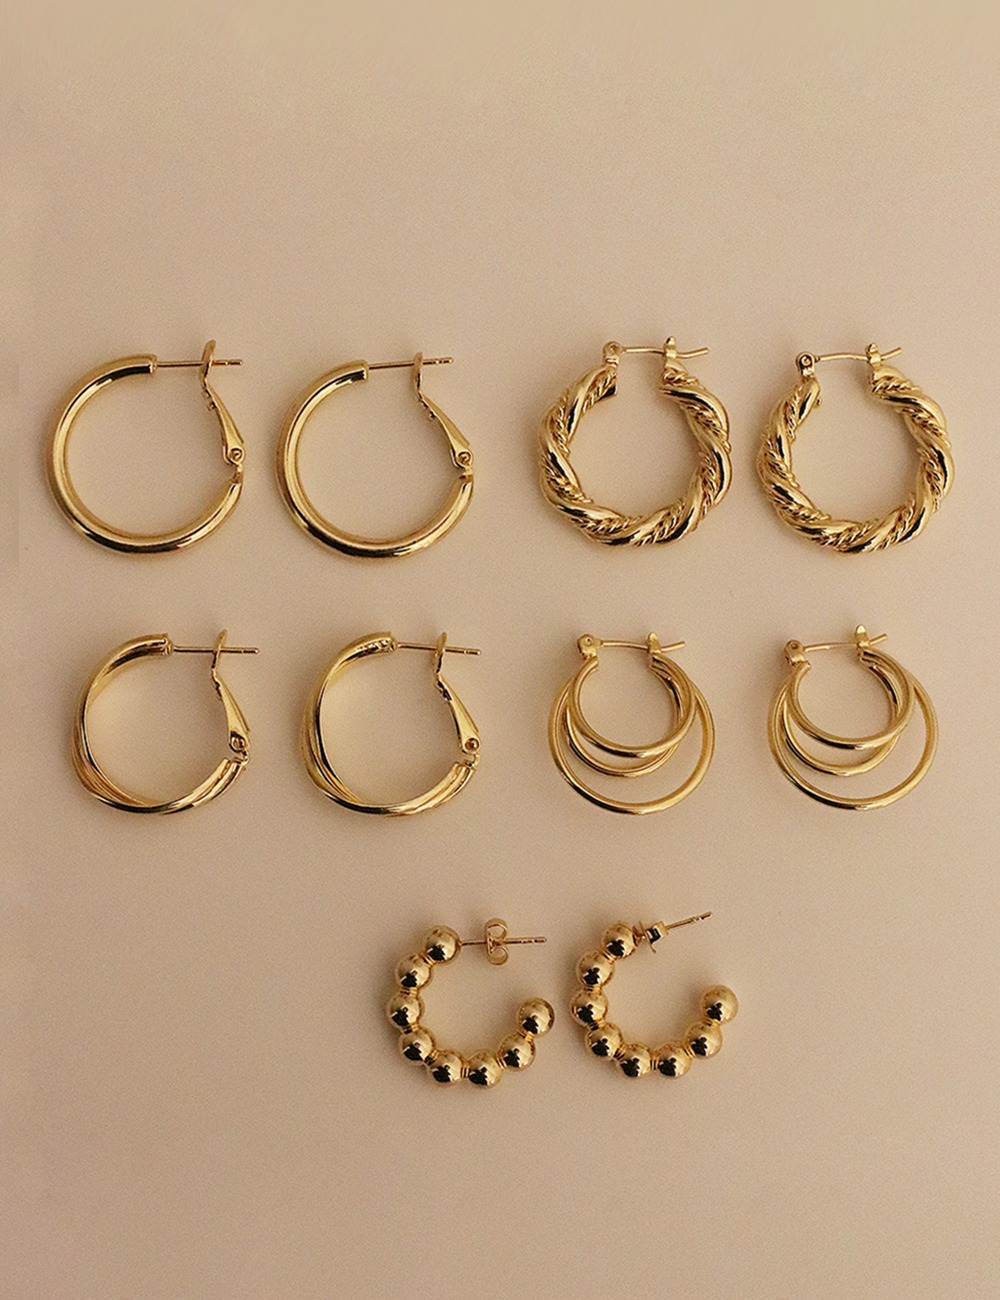 Vintage gold earring collection